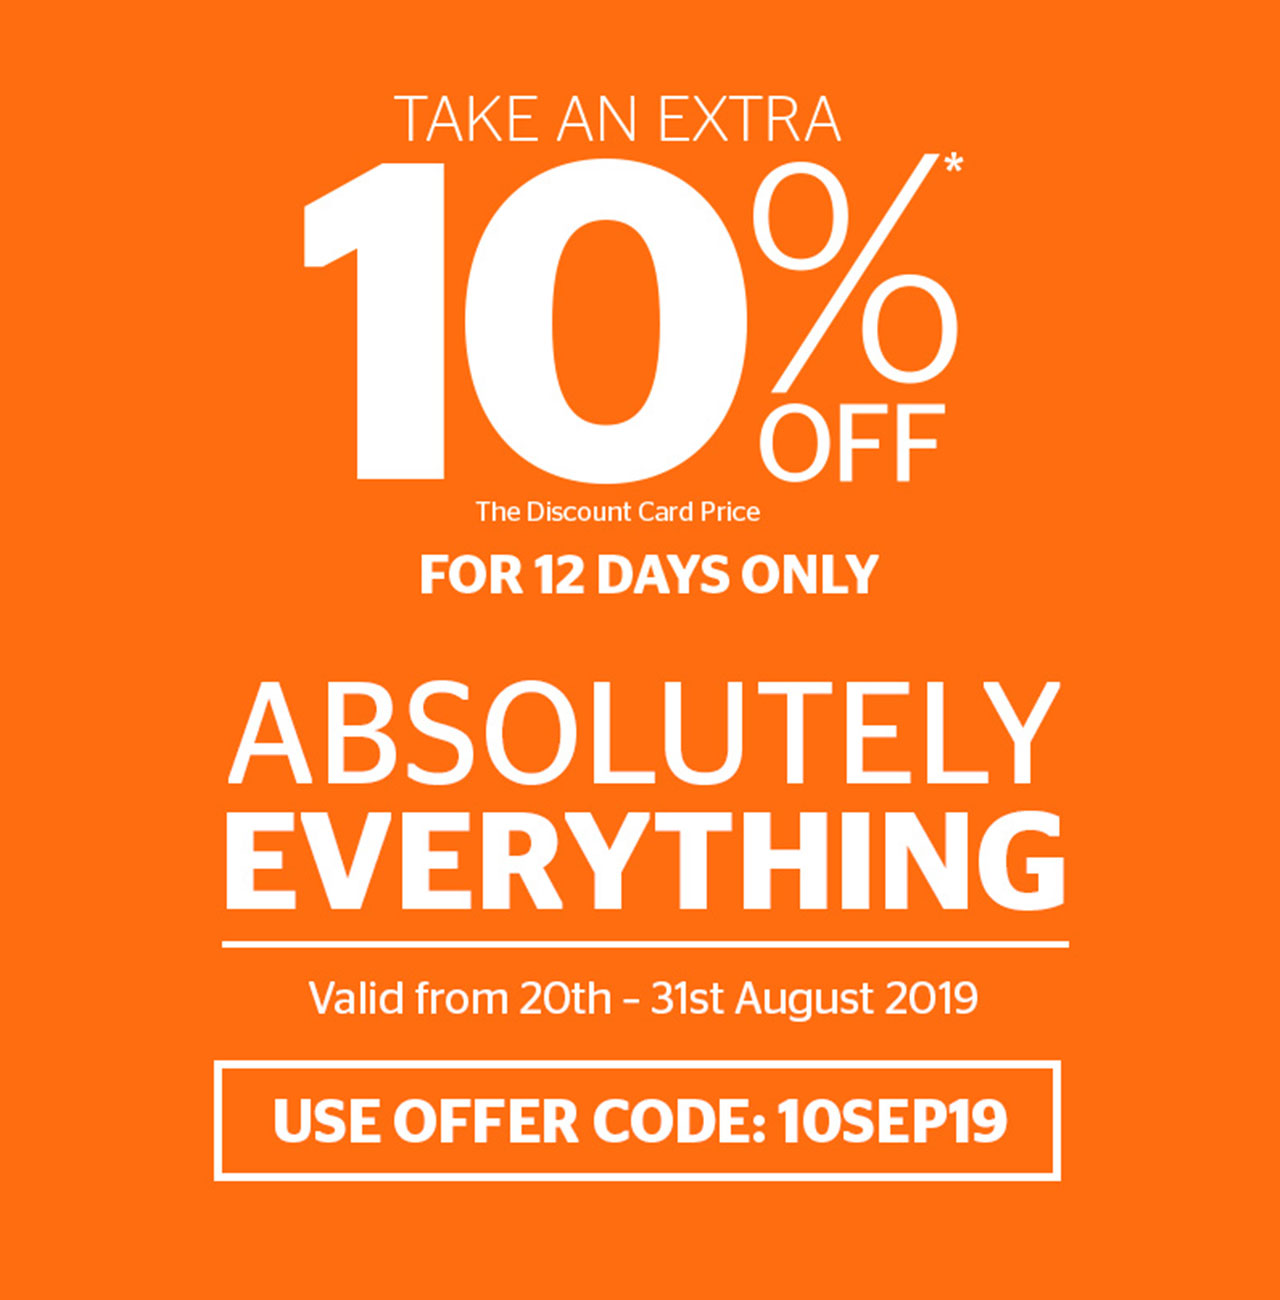 An extra 10% off absolutely everything